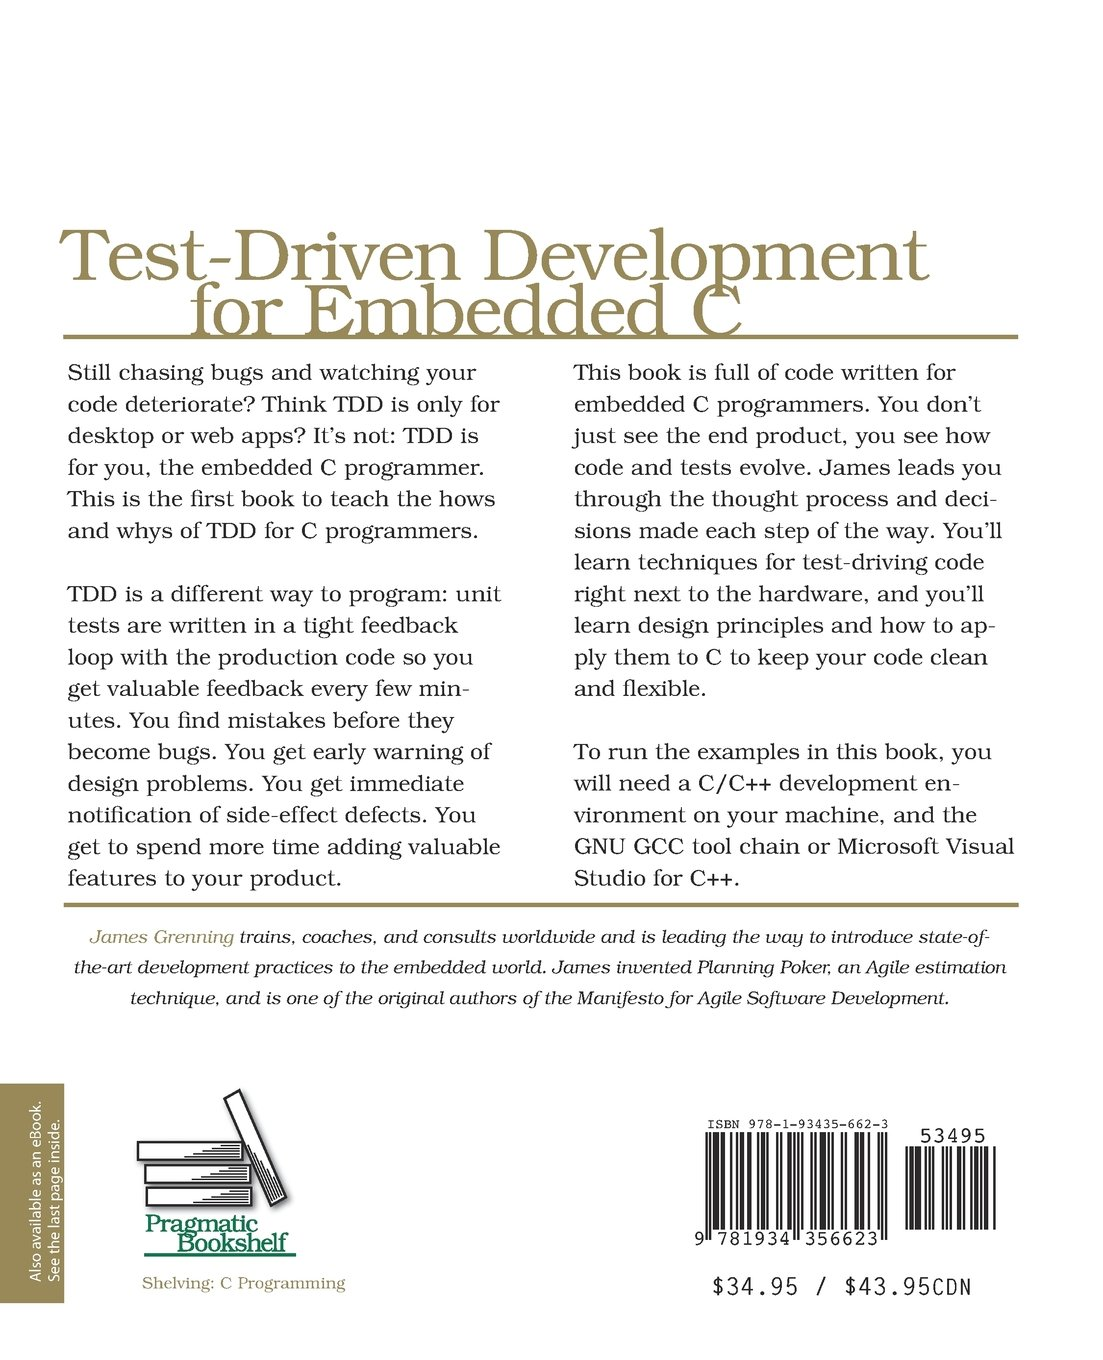 Test Driven Development for Embedded C (Pragmatic